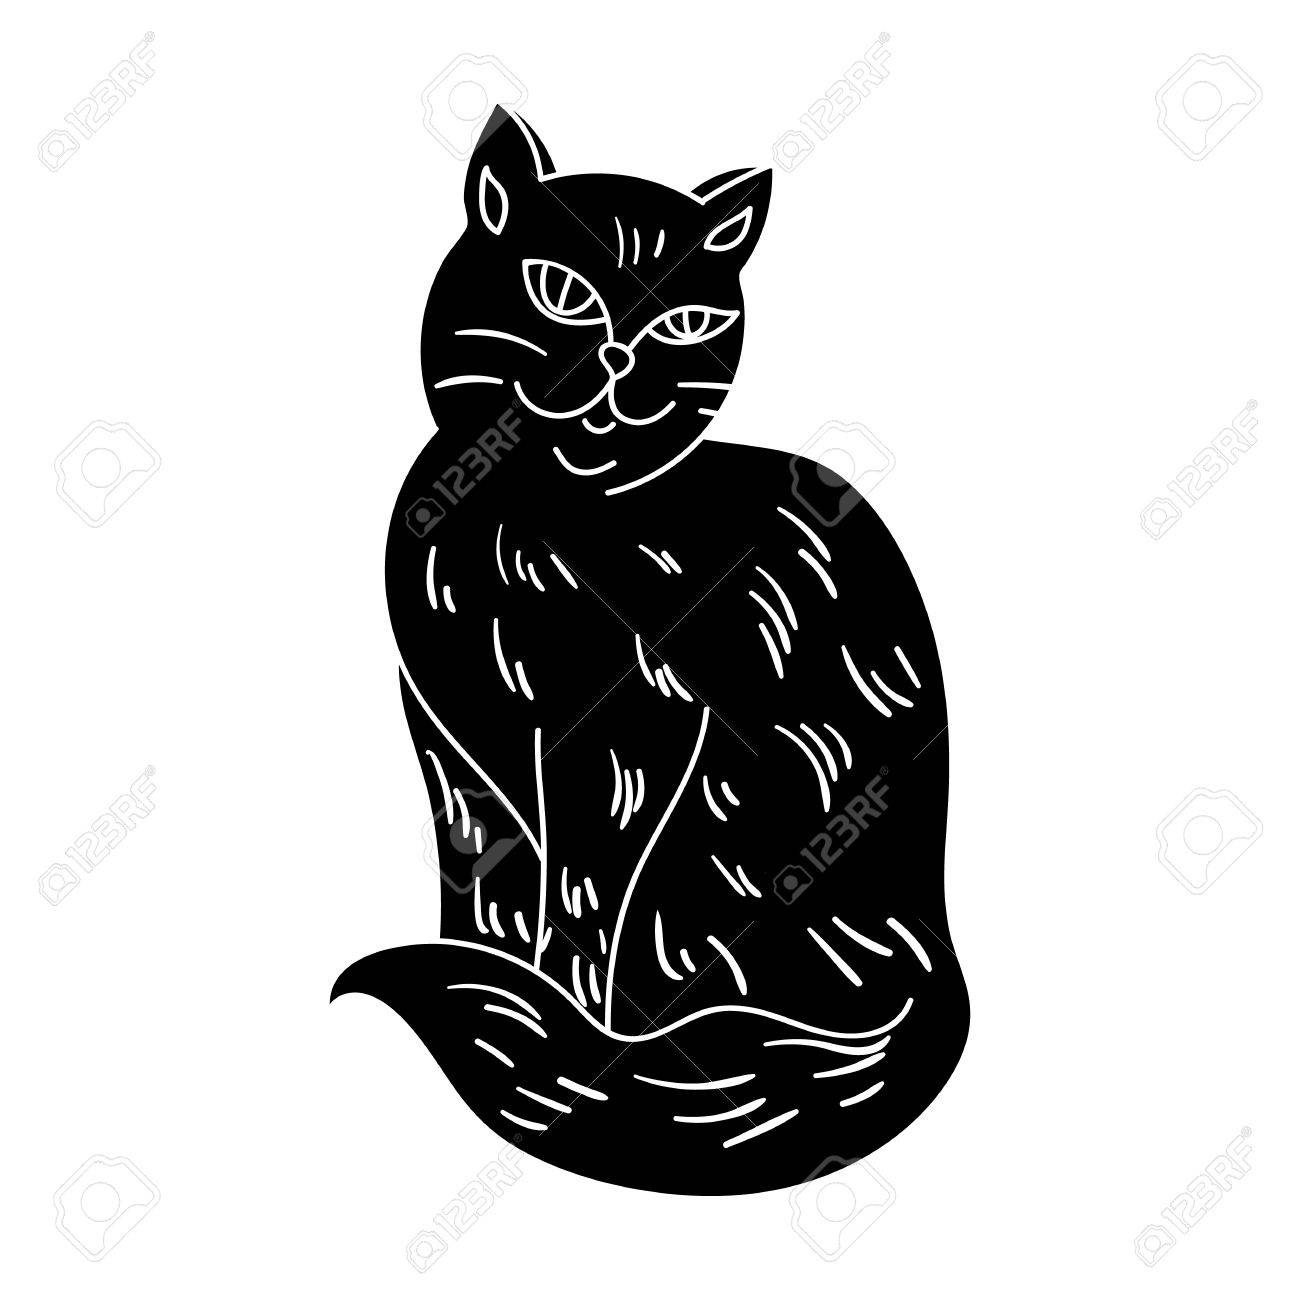 Nebelung Icon In Black Style Isolated On White Background Cat